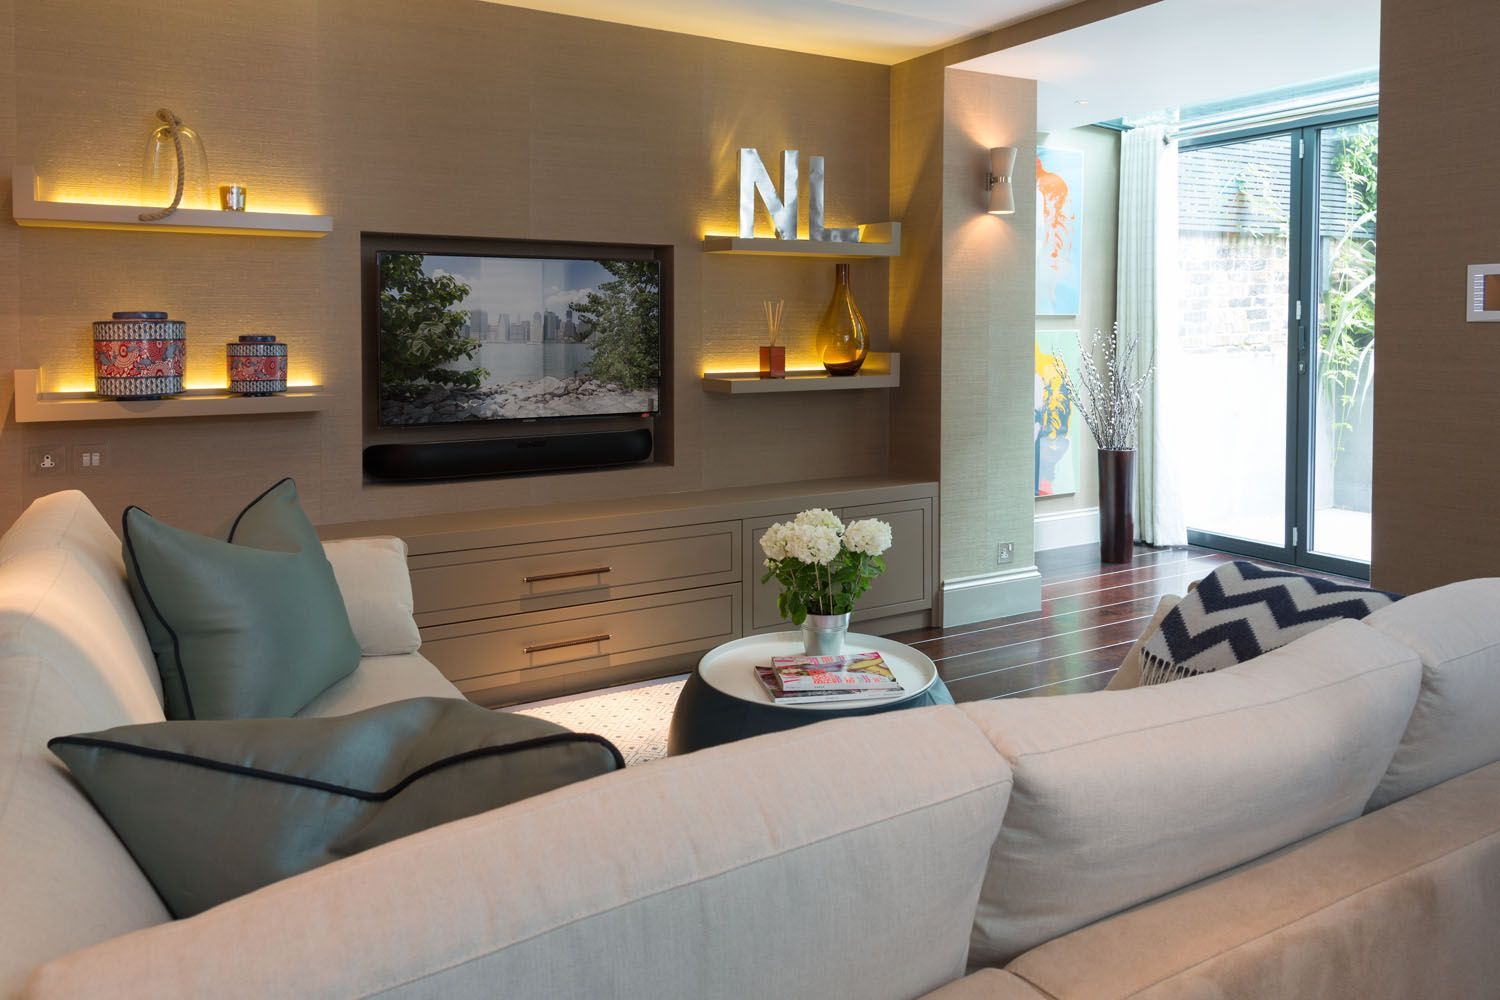 Recessed Tv Floating Shelves And Built In39s Matching The